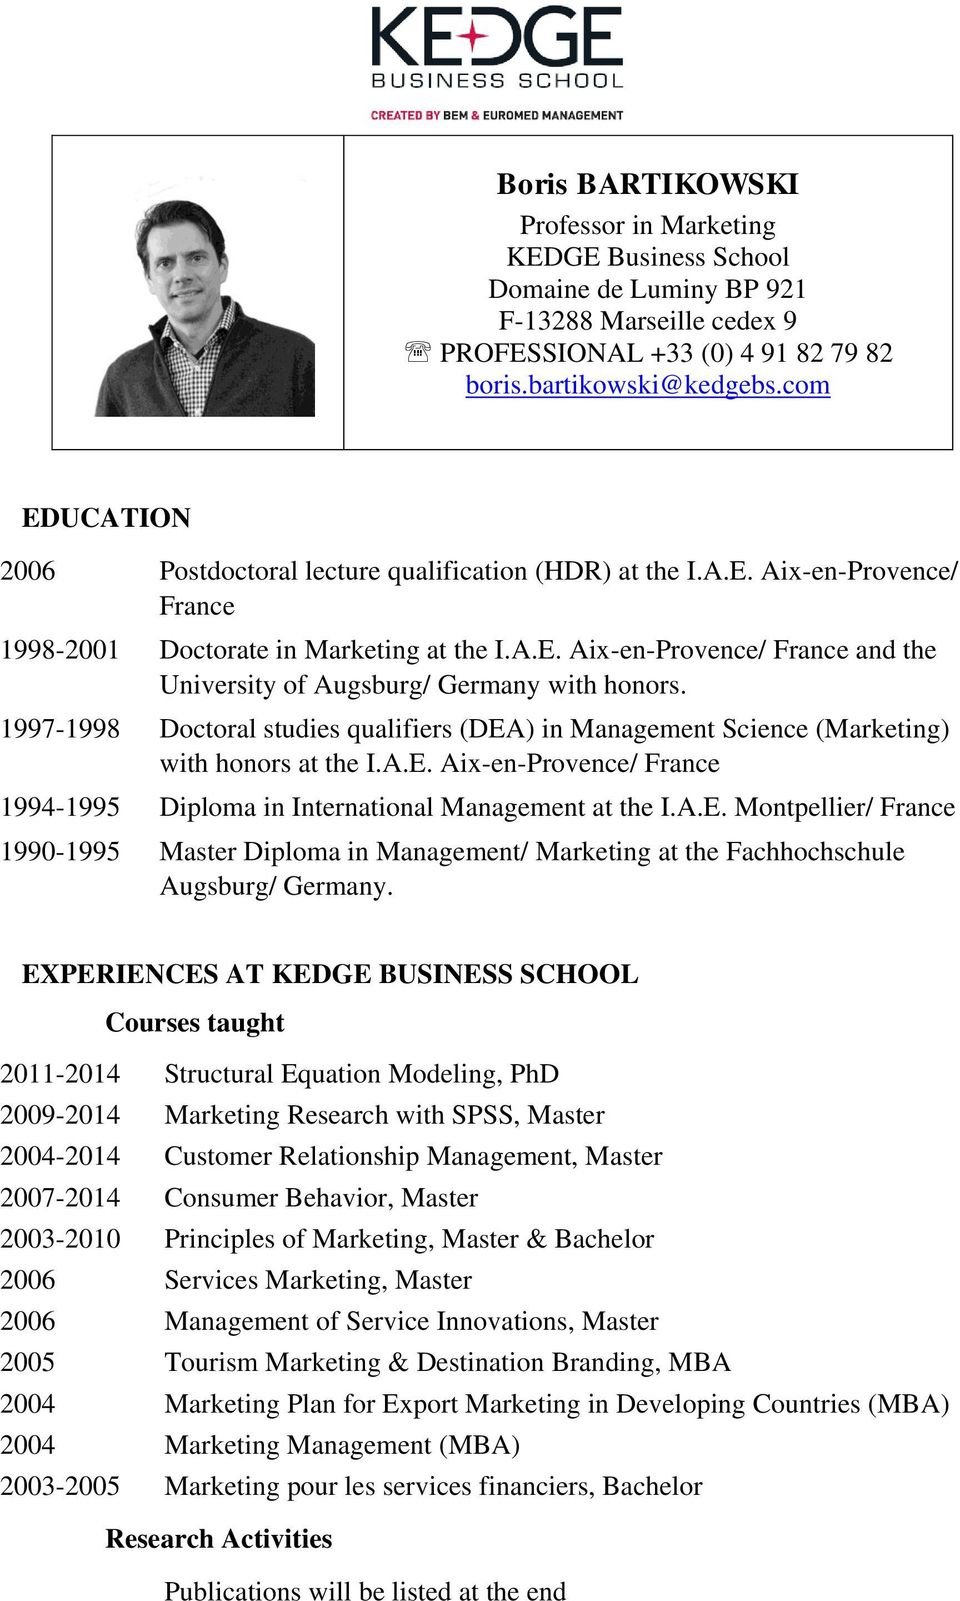 1997-1998 Doctoral studies qualifiers (DEA) in Management Science (Marketing) with honors at the I.A.E. Aix-en-Provence/ France 1994-1995 Diploma in International Management at the I.A.E. Montpellier/ France 1990-1995 Master Diploma in Management/ Marketing at the Fachhochschule Augsburg/ Germany.